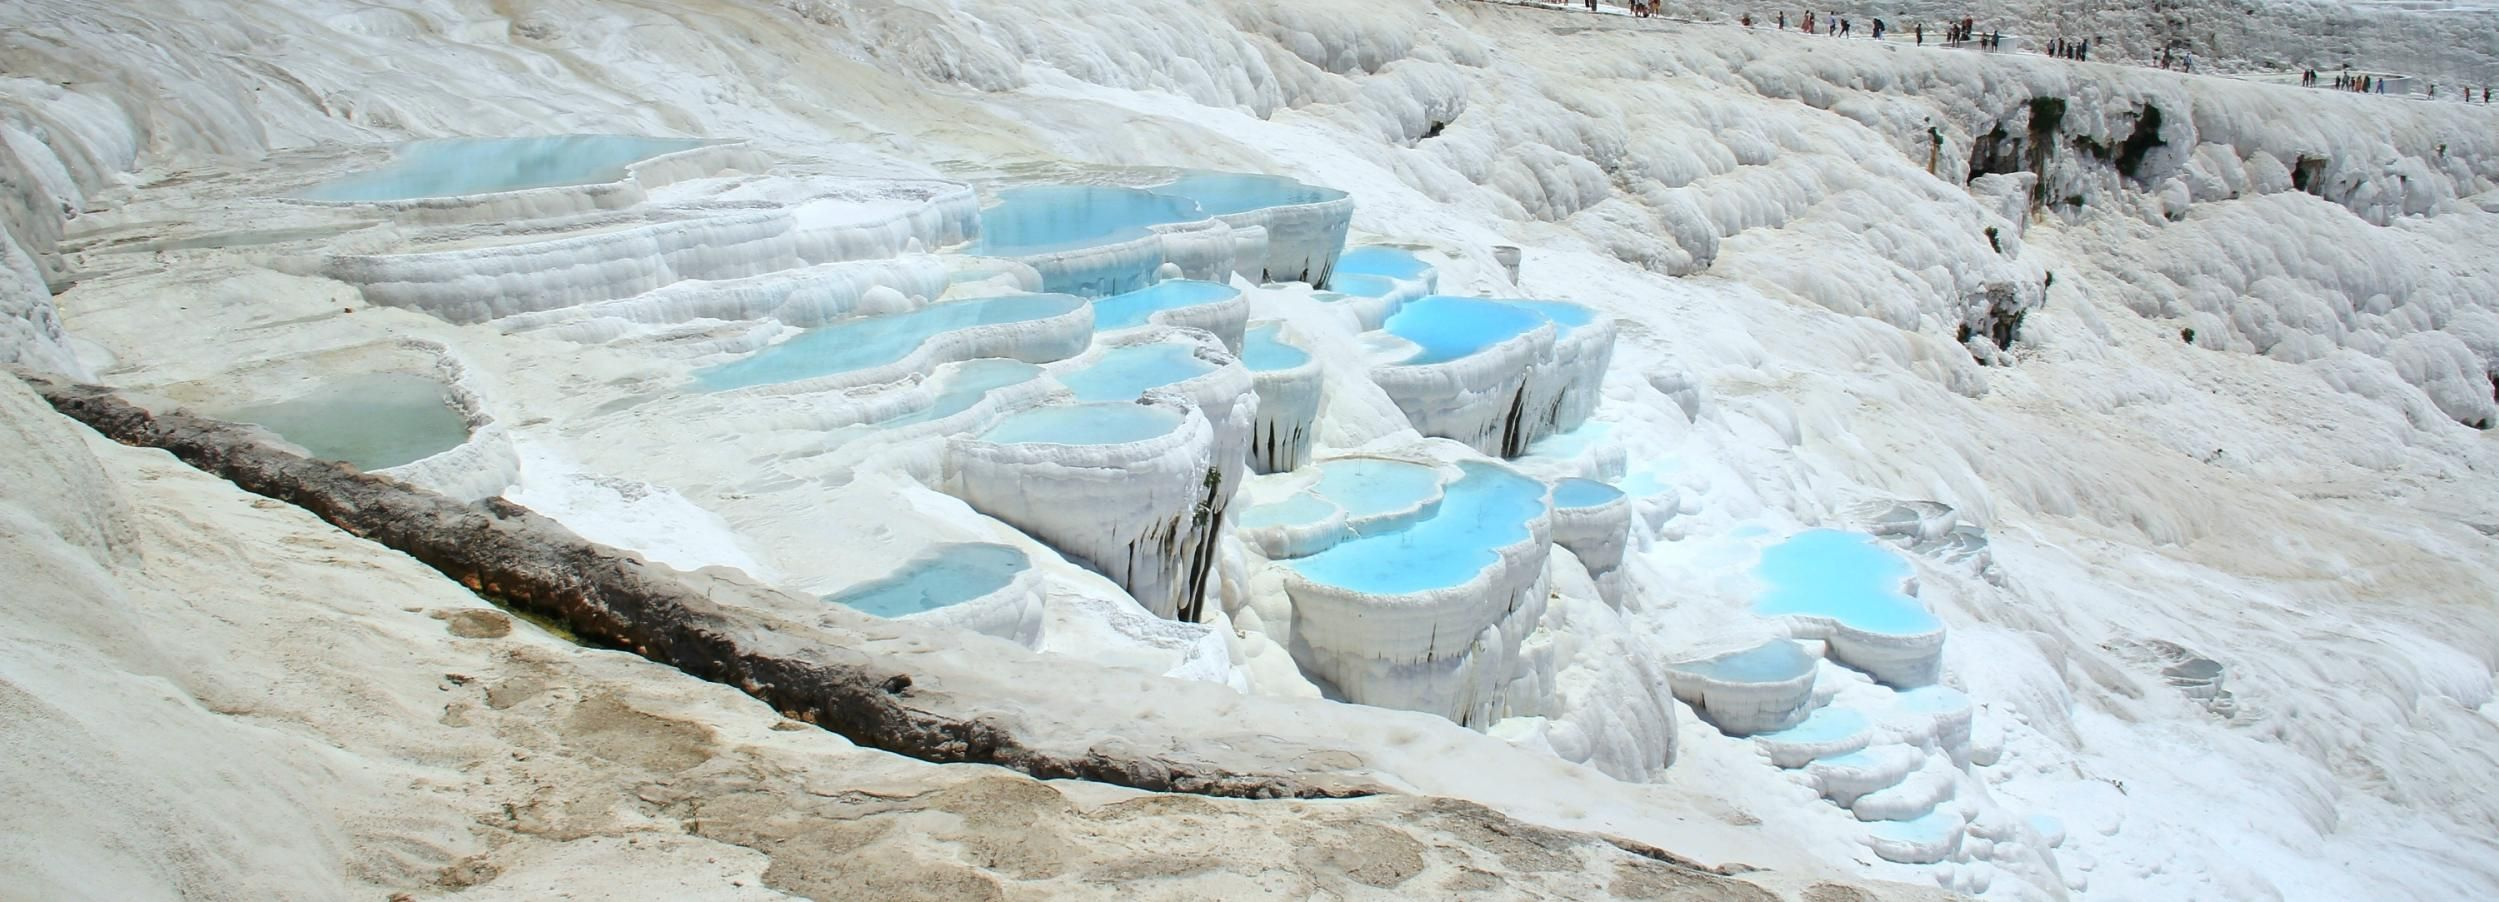 Antalya: Private Ancient Pamukkale and Hierapolis Tour